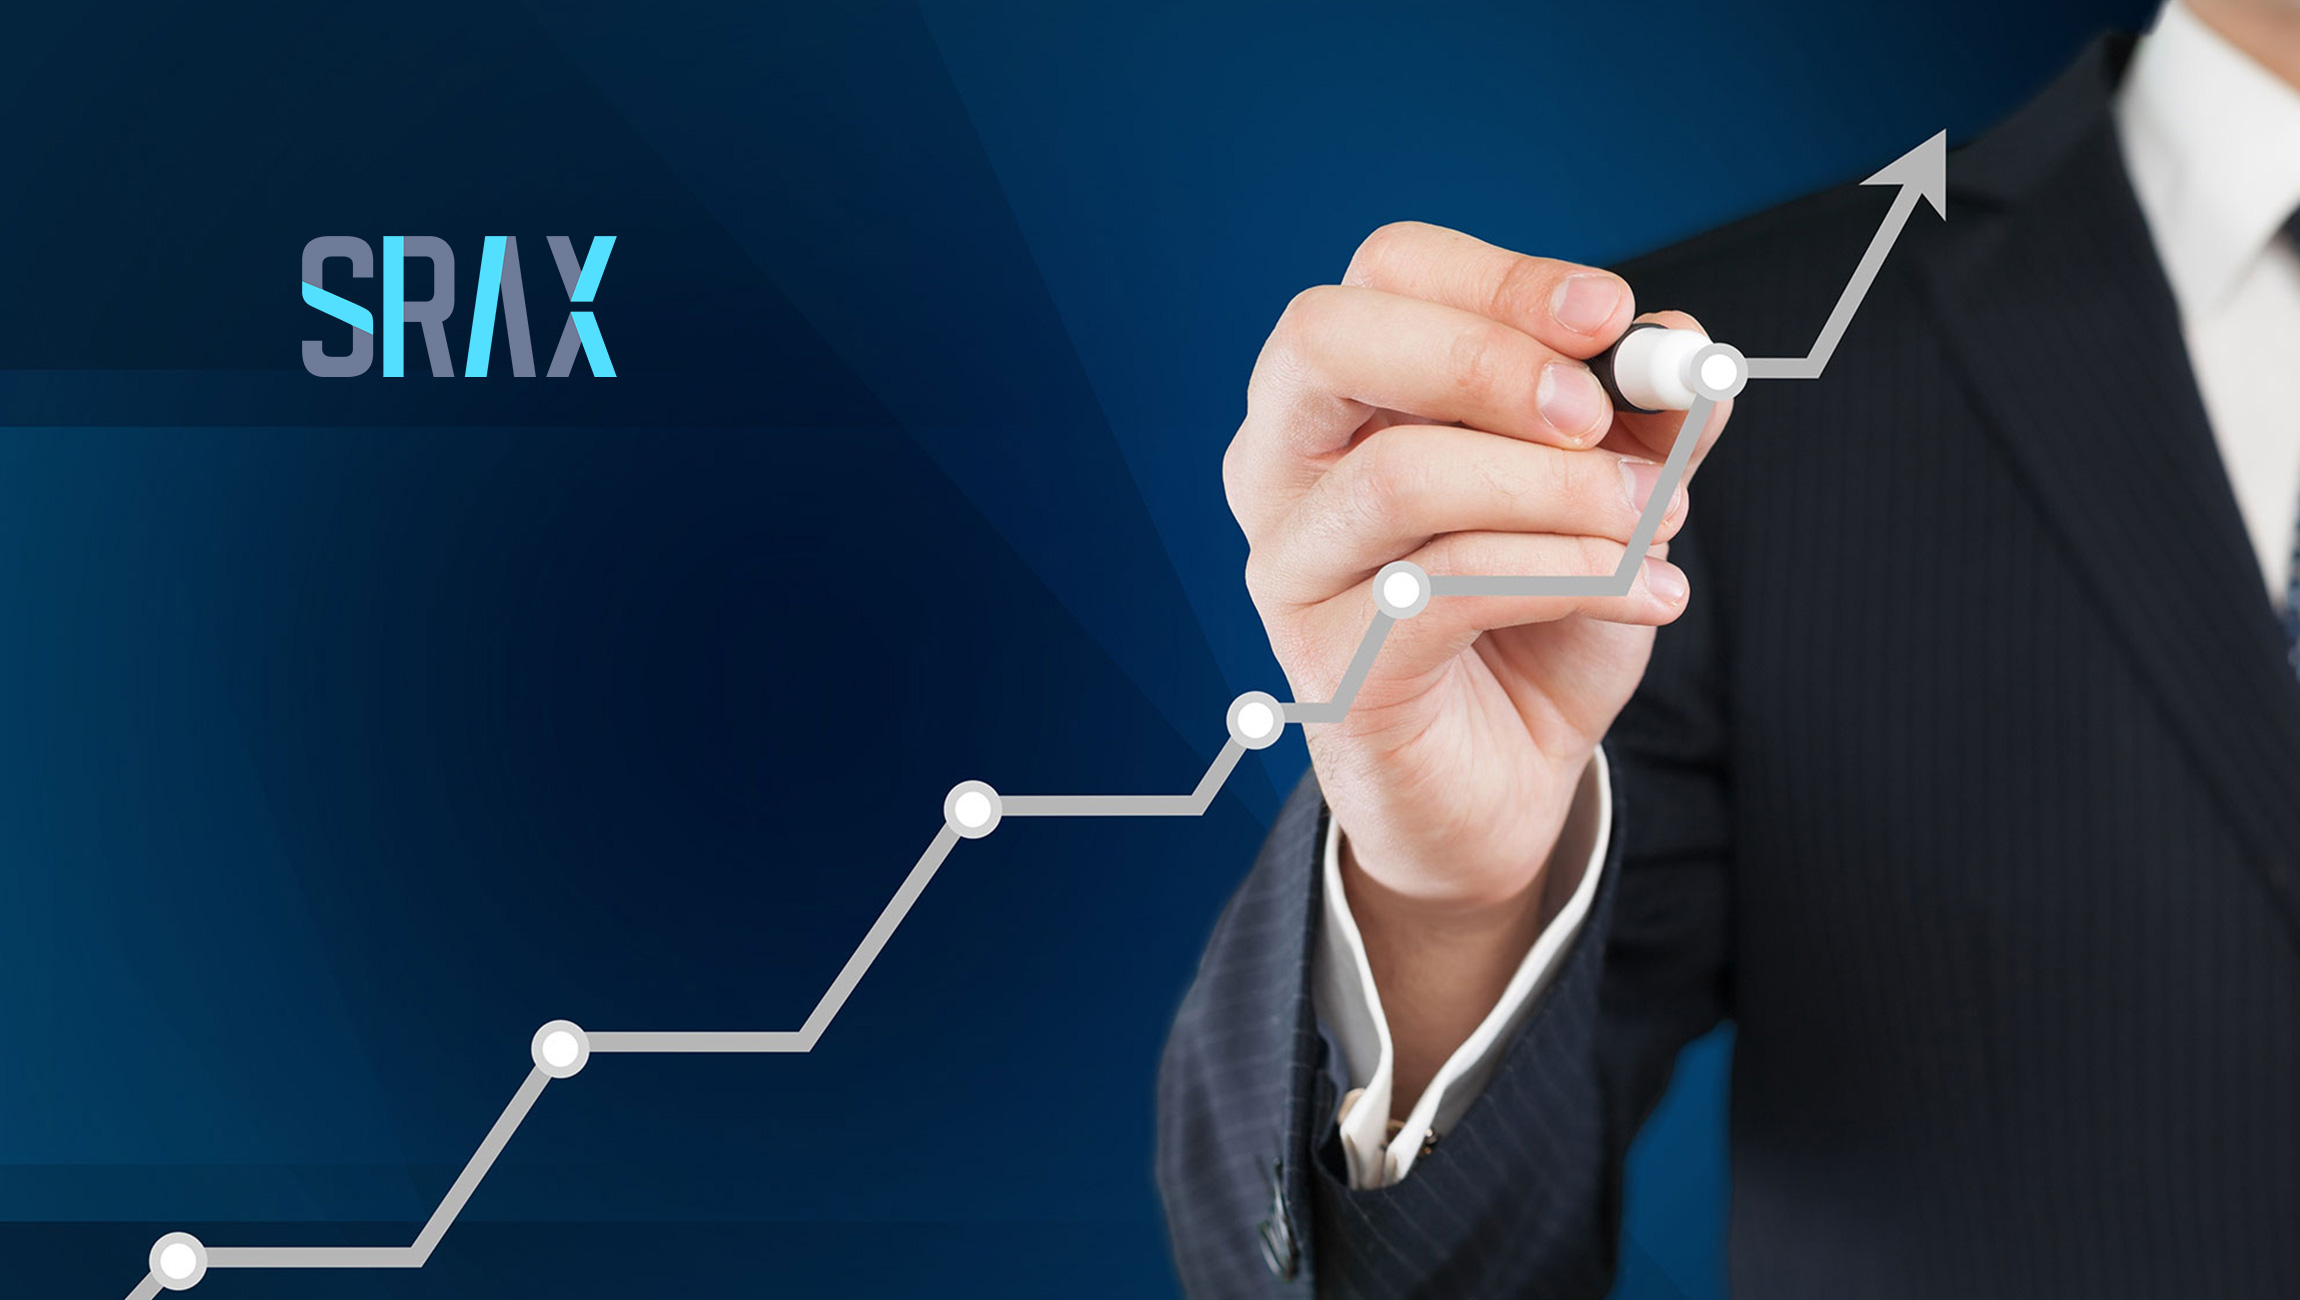 SRAX Announces Growth of SRAX IR Platform and Enhanced Features